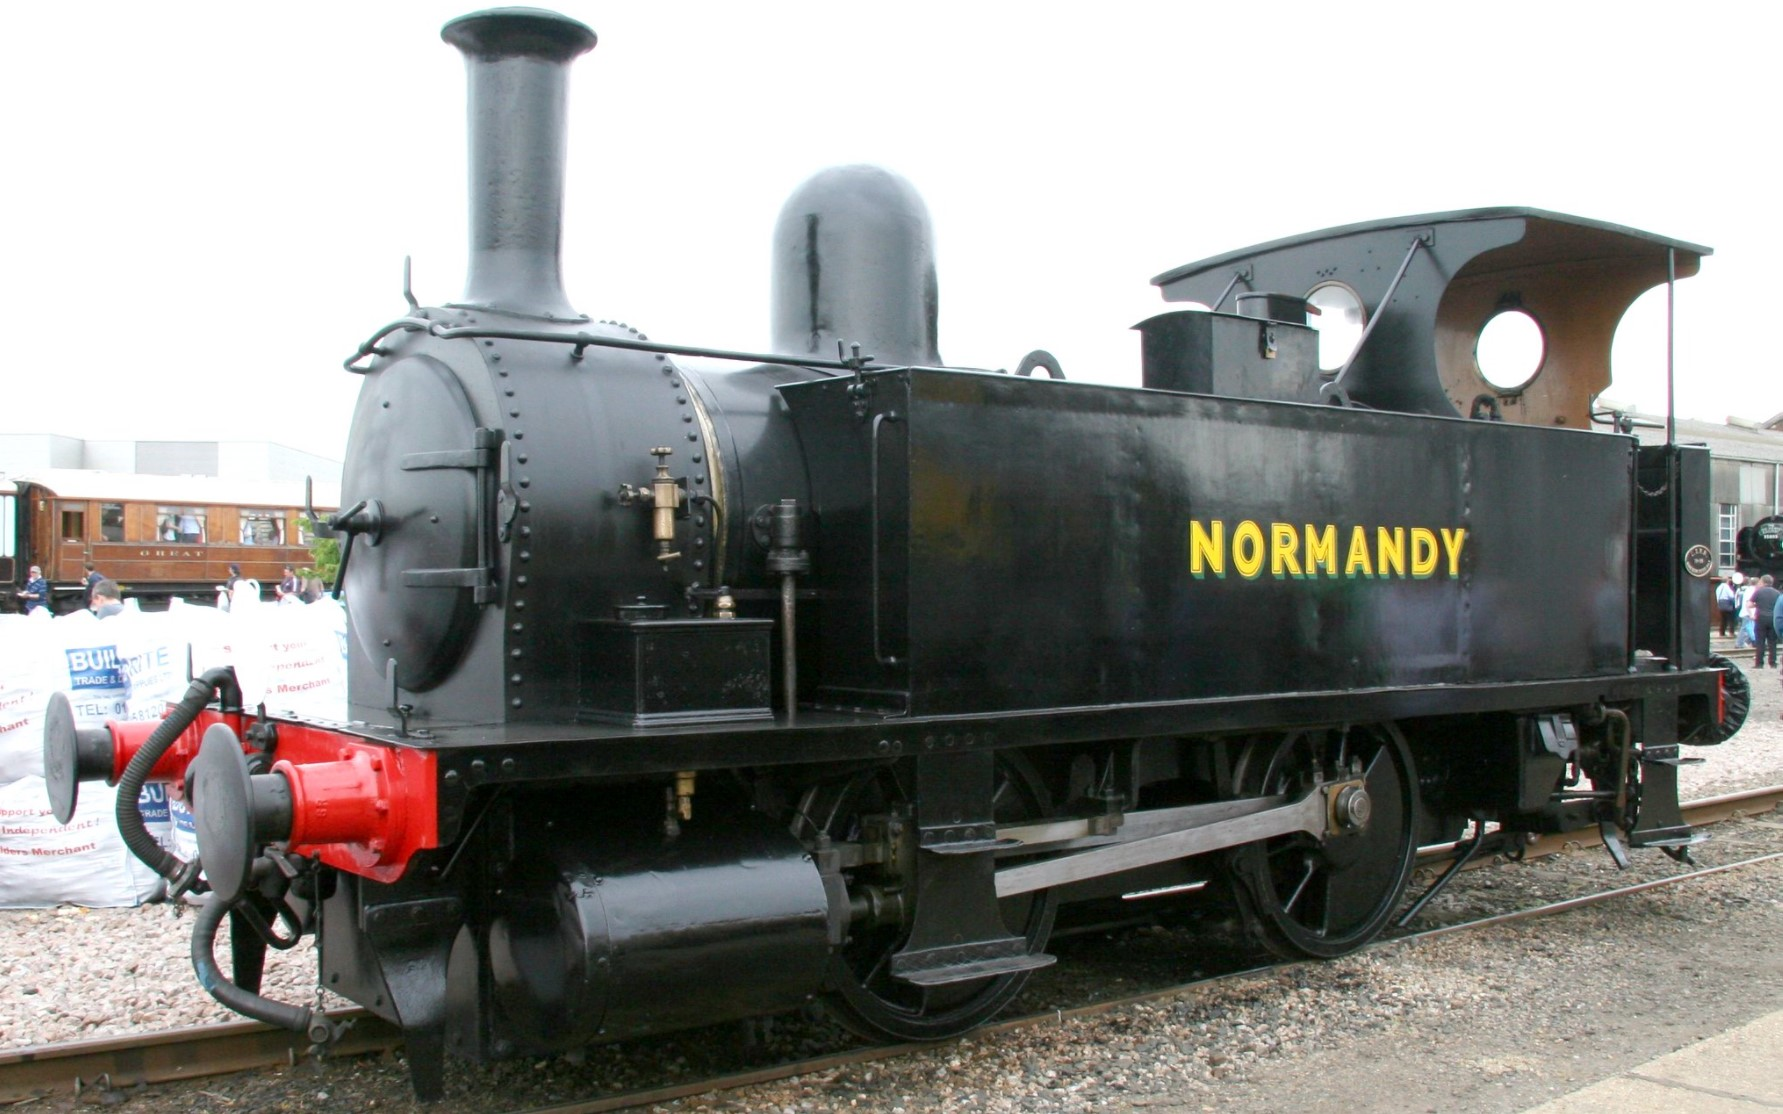 """No. 96 """"Normandy"""" at Eastleigh Works in May 2009. ©KitMasterBloke"""